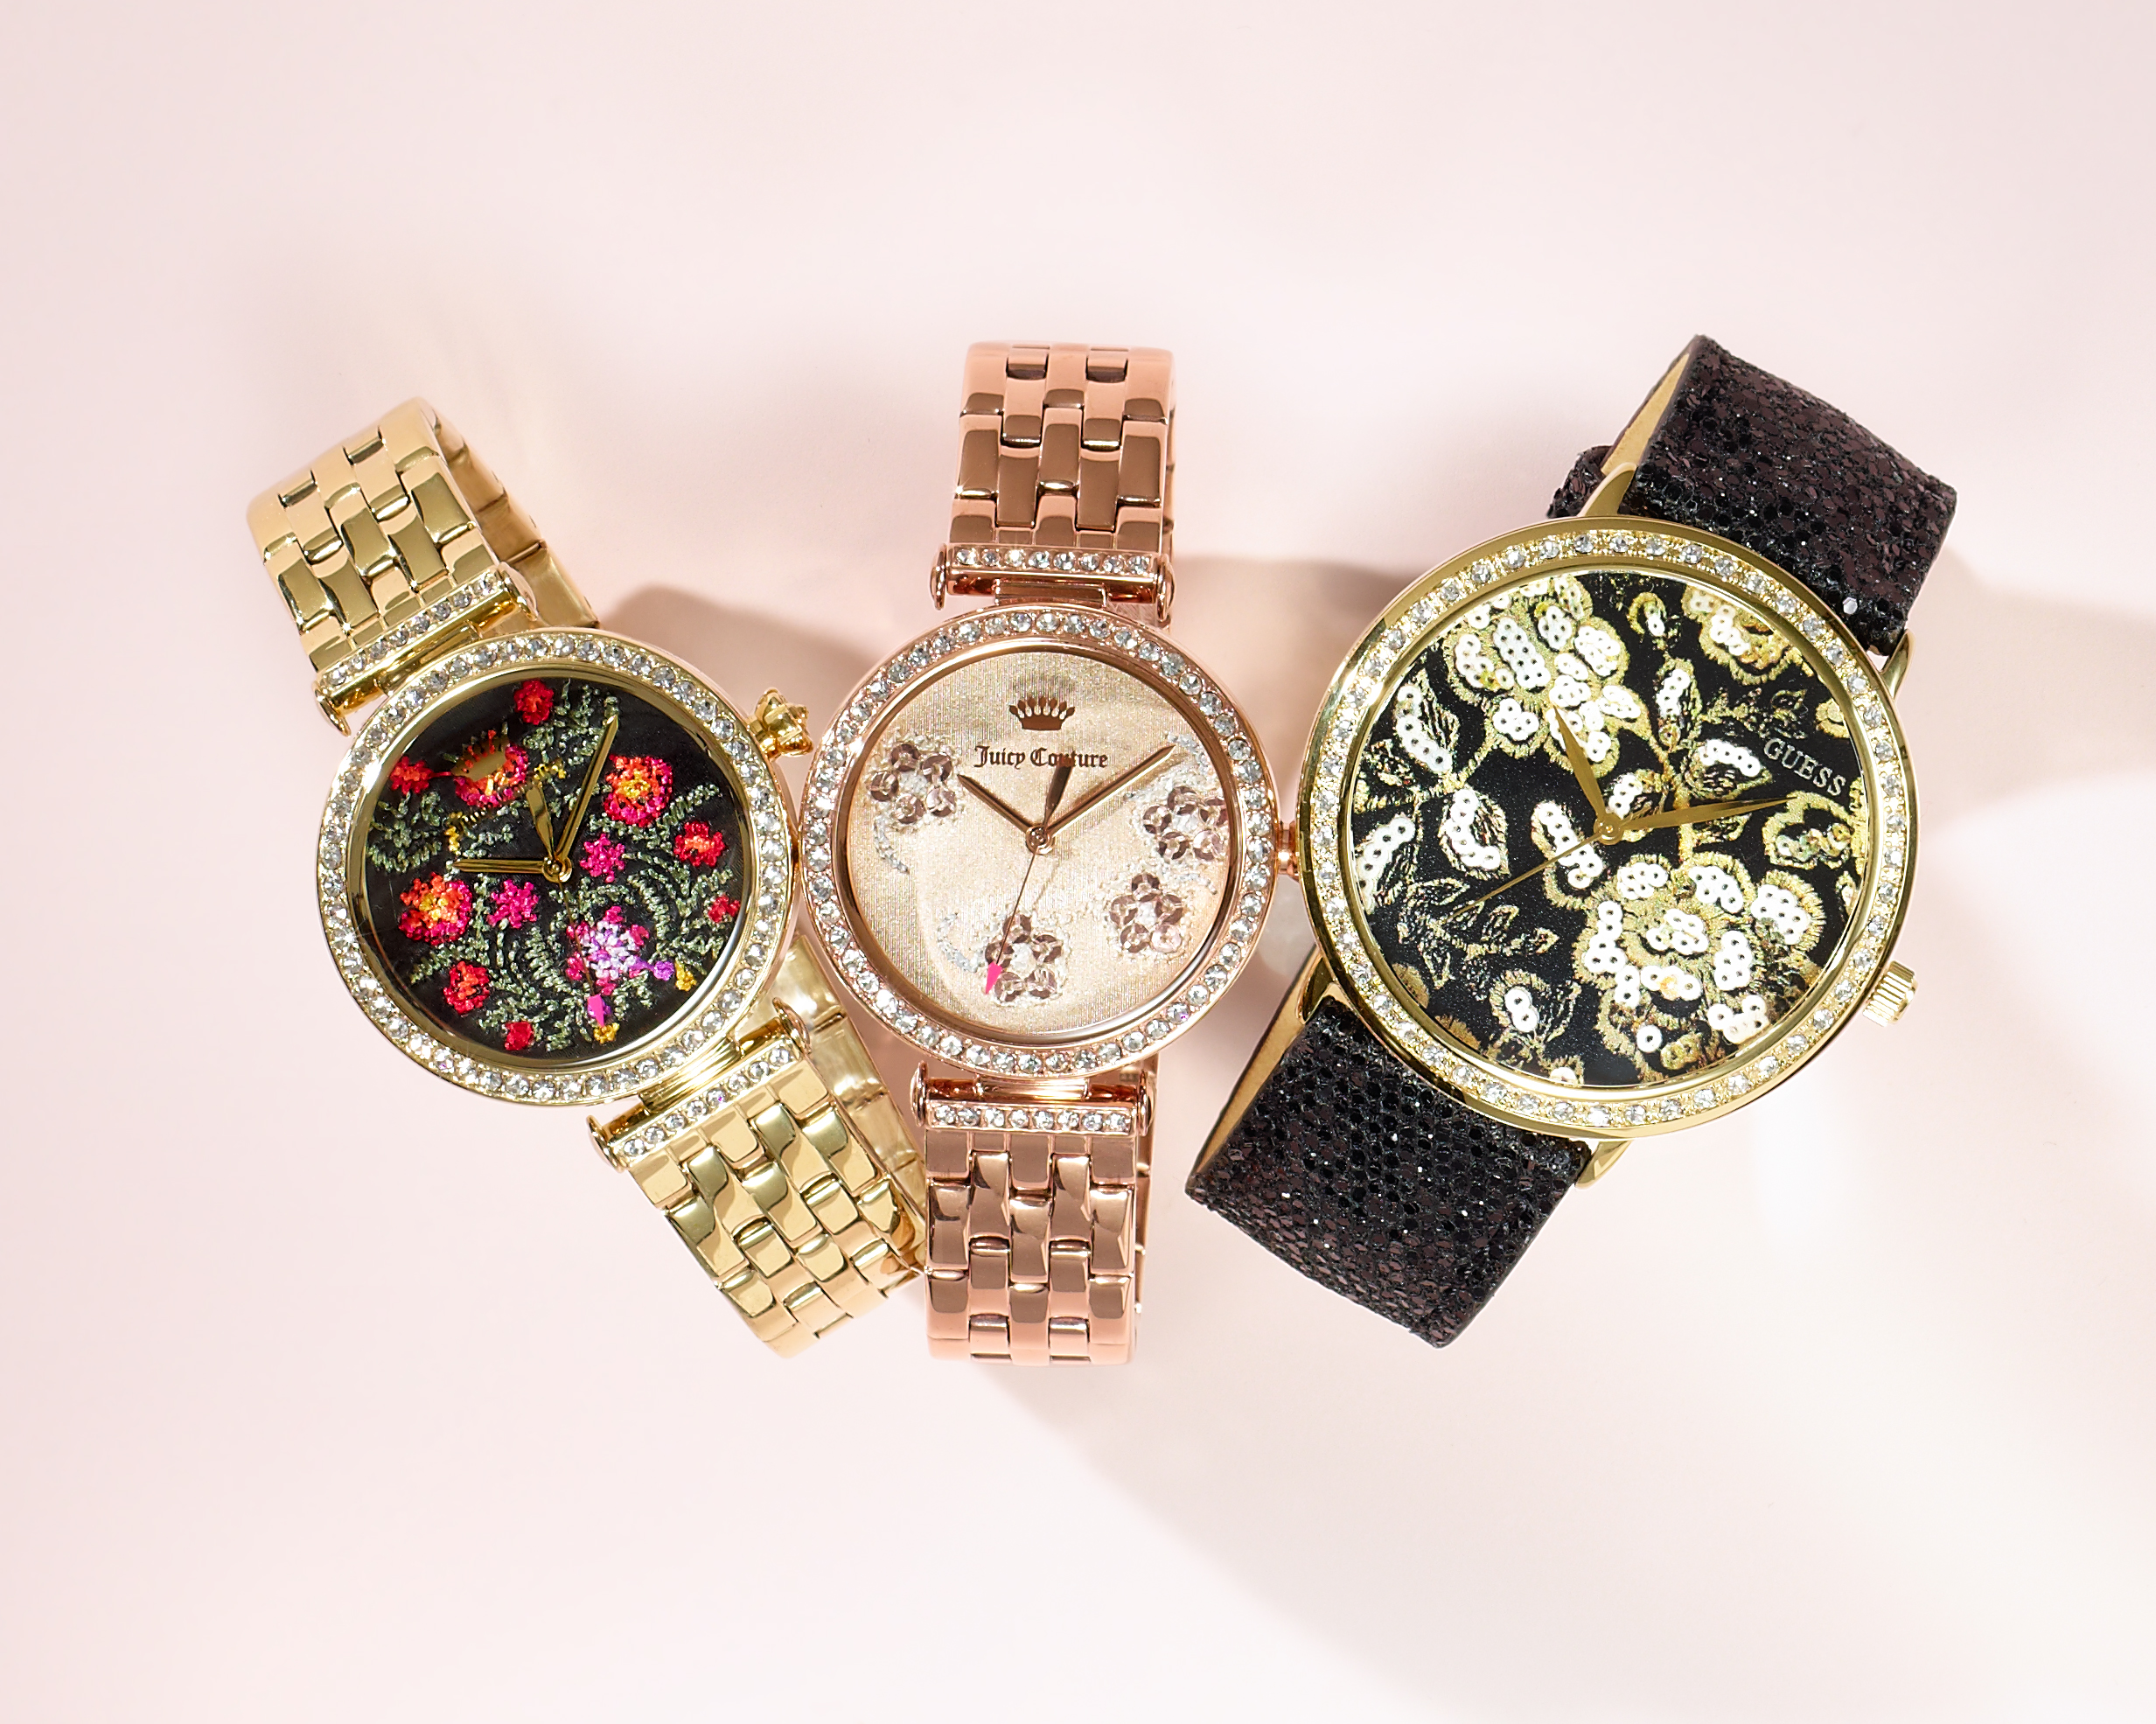 1560_NYNY_W_W_WATCHES_BB_GUESS&JUICYCOUTUREWATCHES_crp copy.jpg